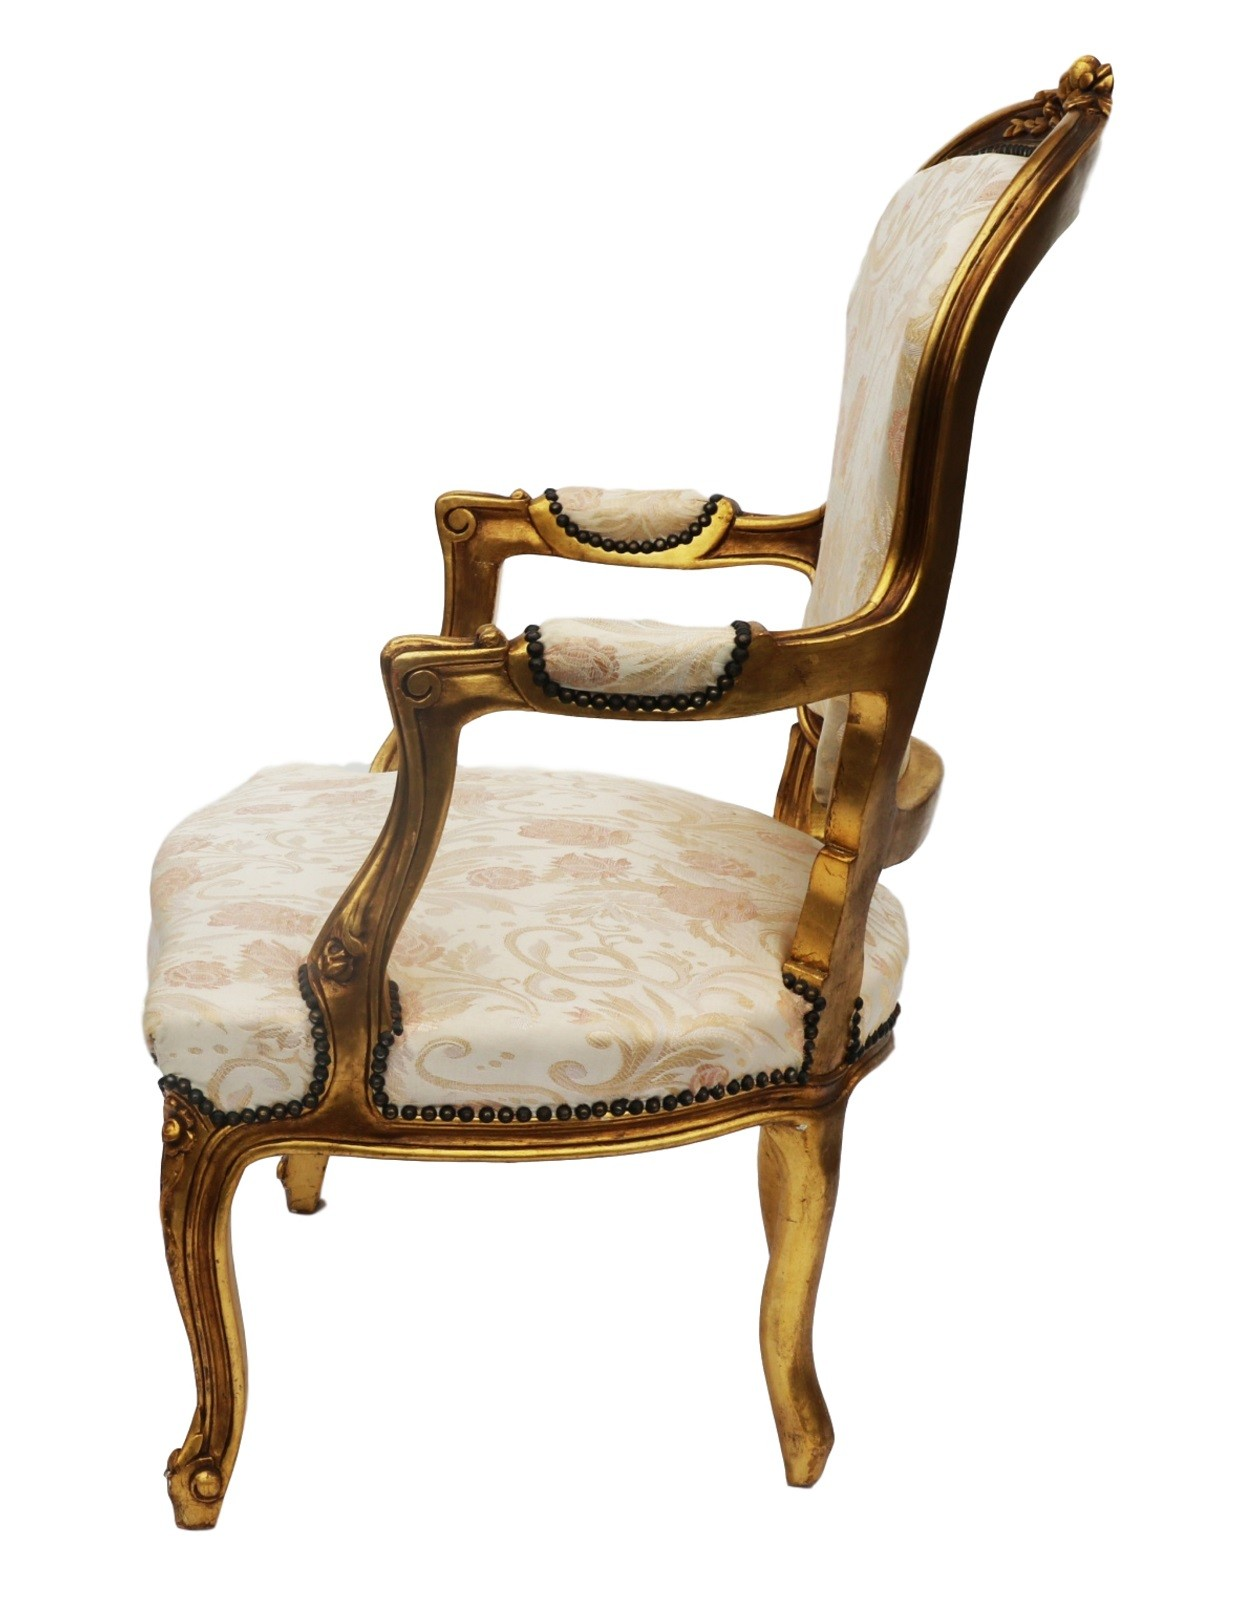 french louis xv style carved gilt wood fauteuil arm chair 20th century. Black Bedroom Furniture Sets. Home Design Ideas